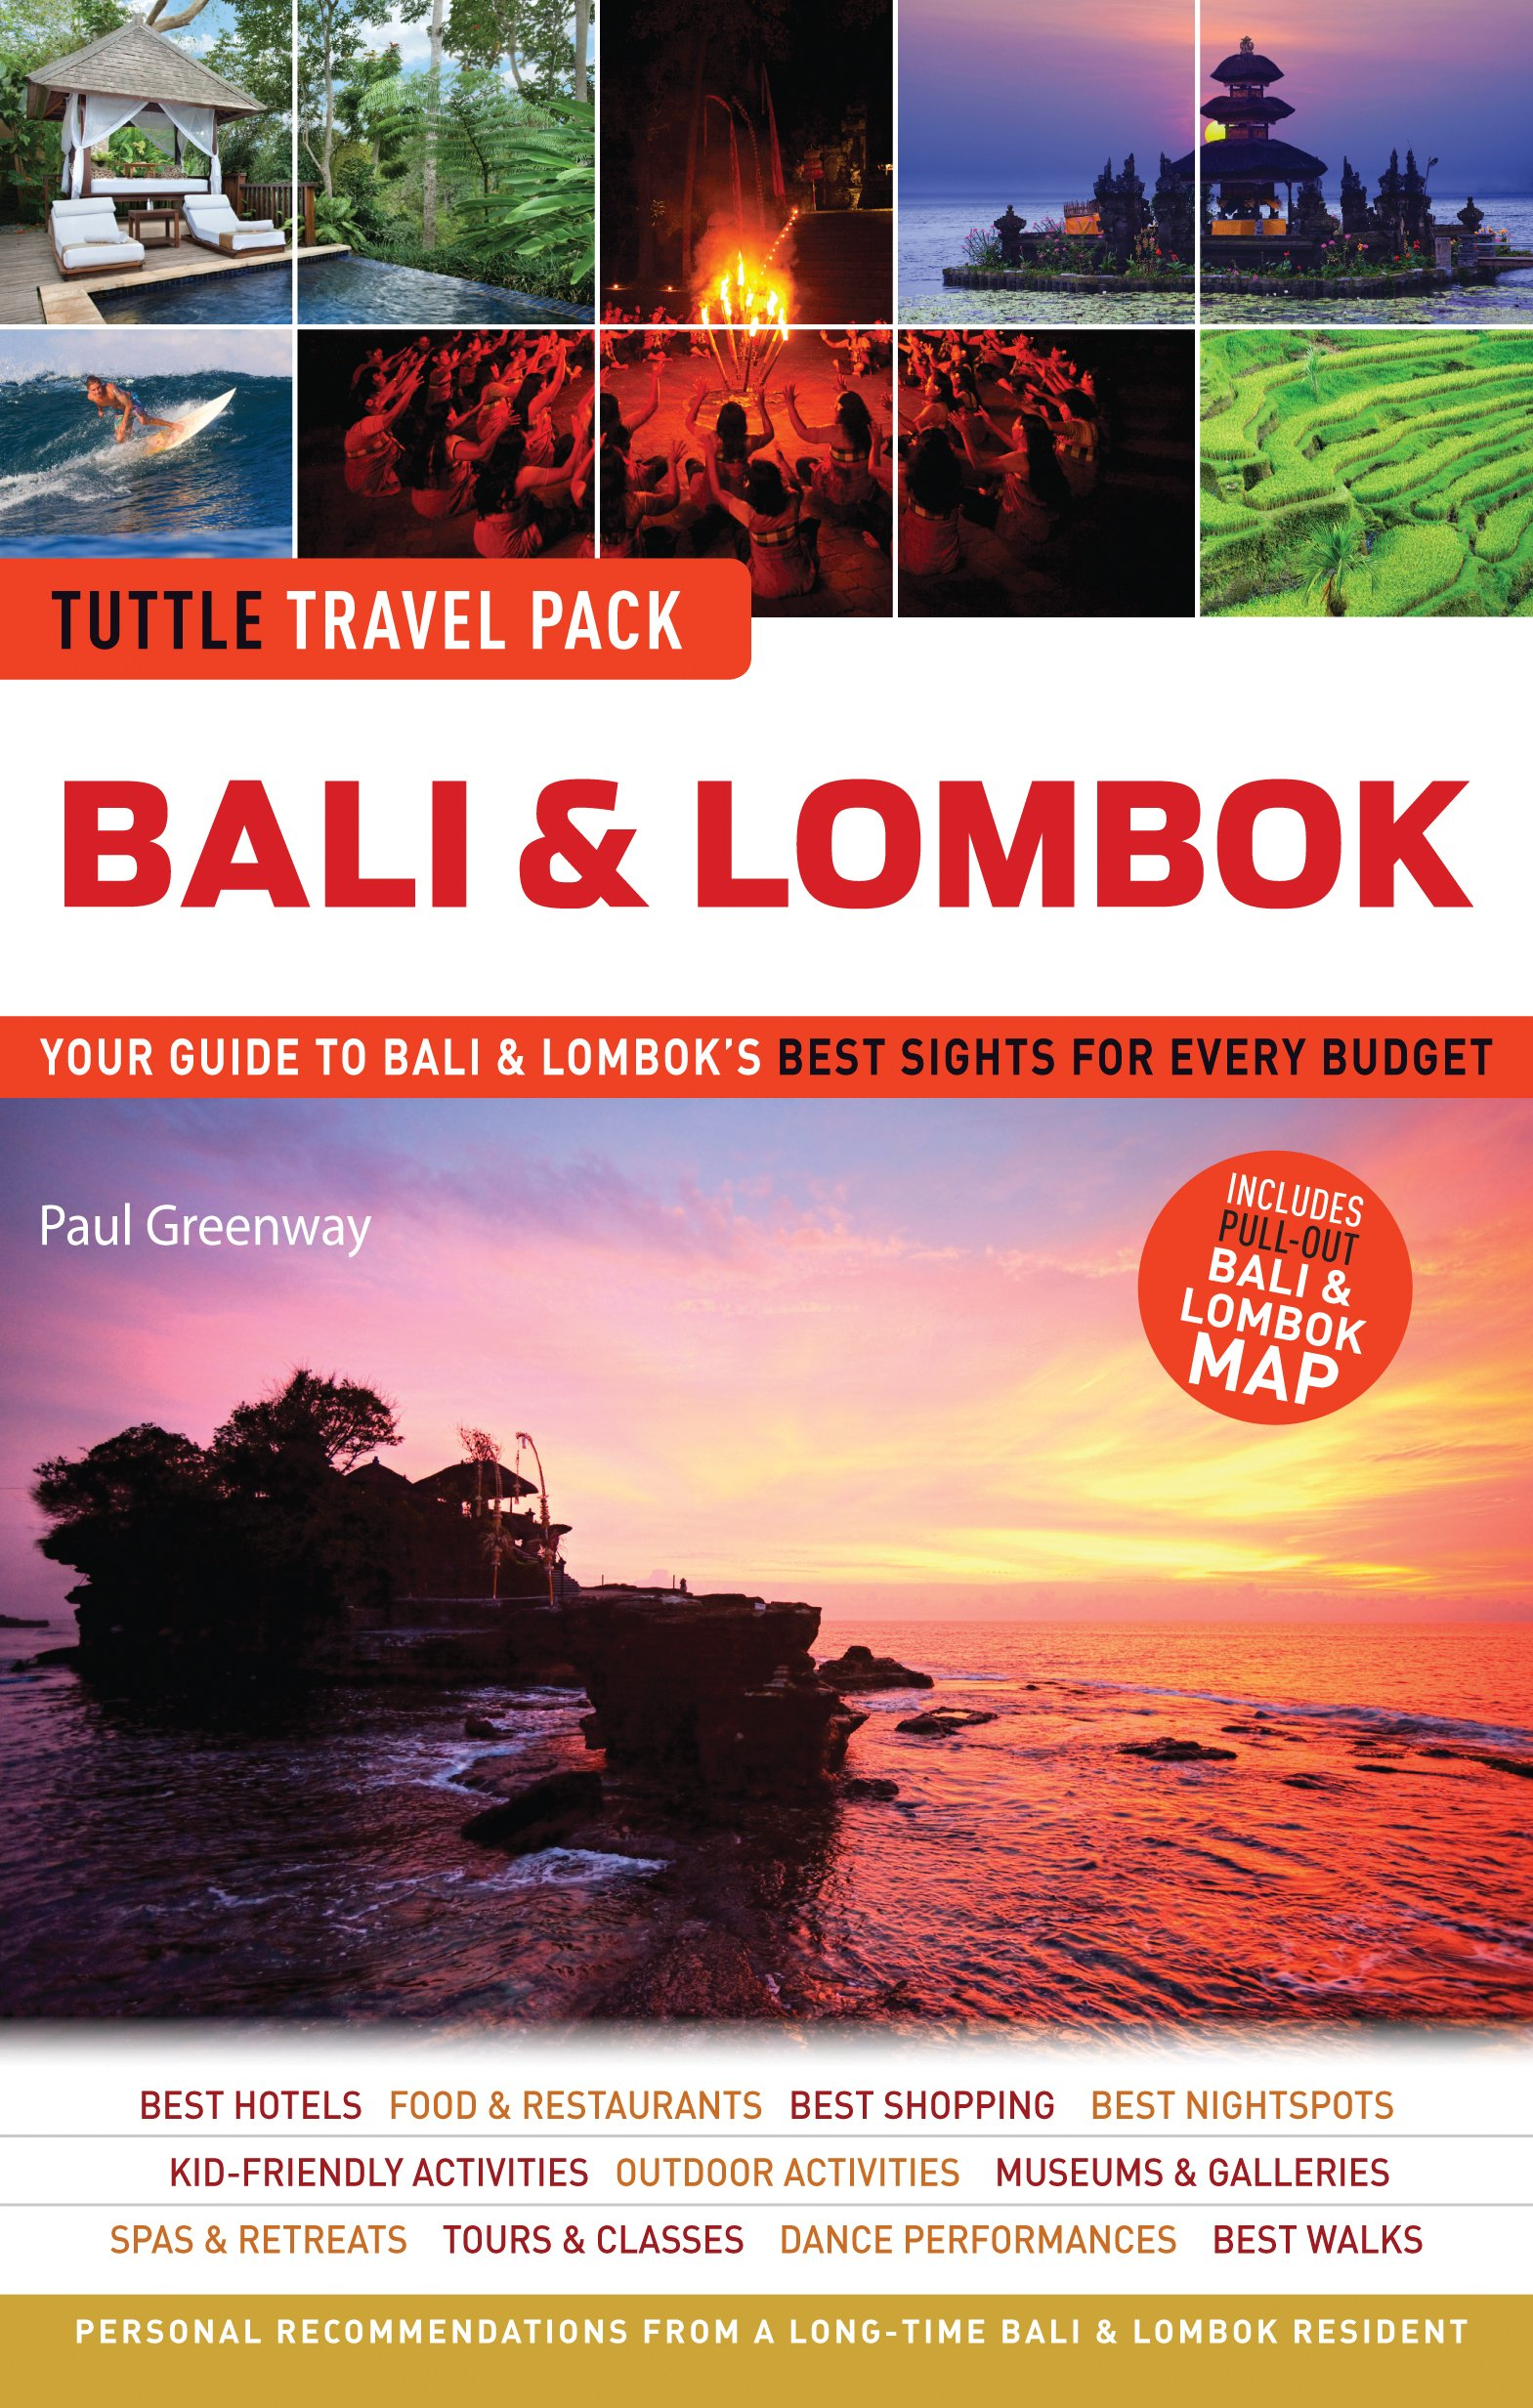 Bali & Lombok Tuttle Travel Pack: Your Guide to Bali & Lombok's Best Sights for Every Budget (Tuttle Travel Guide & Map)